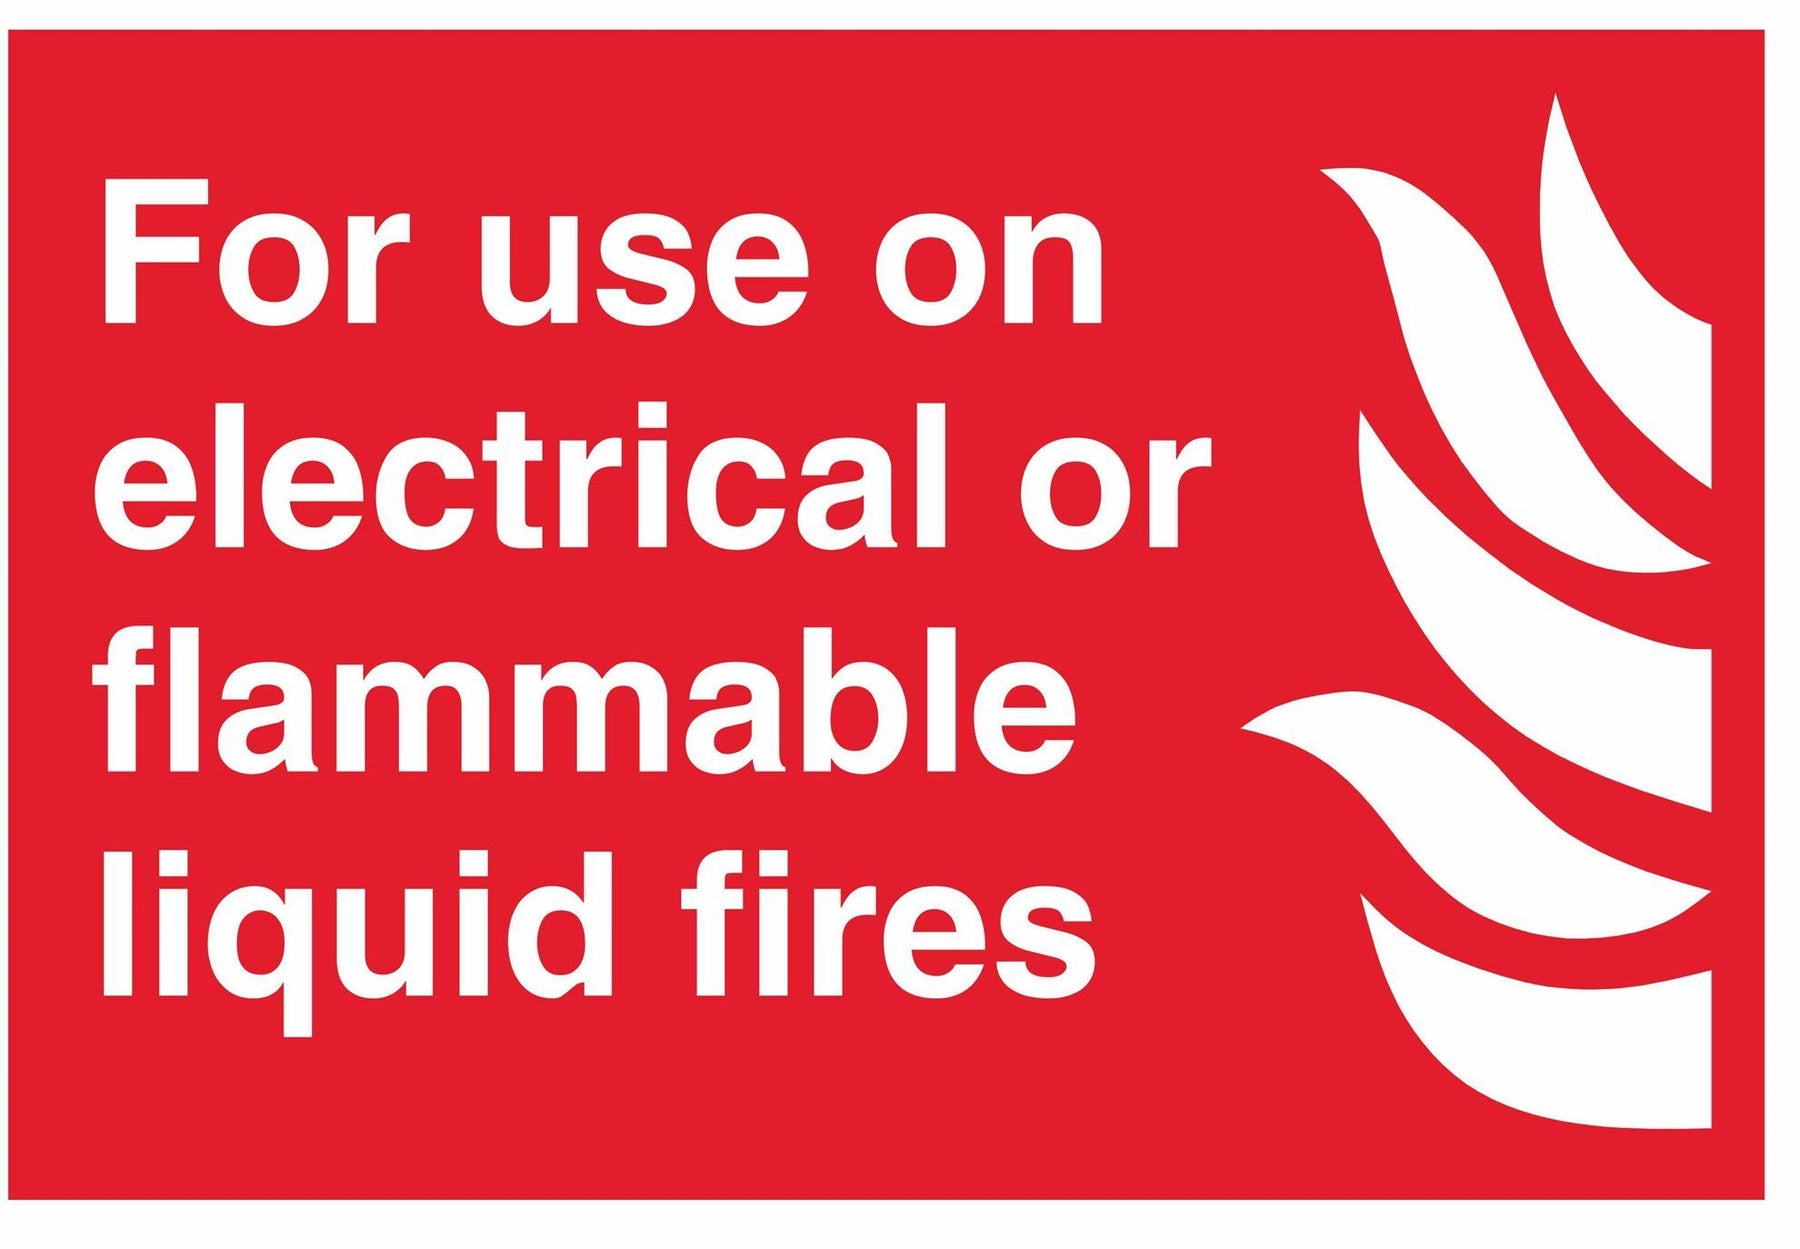 For use on electrical or flammable liquid fires